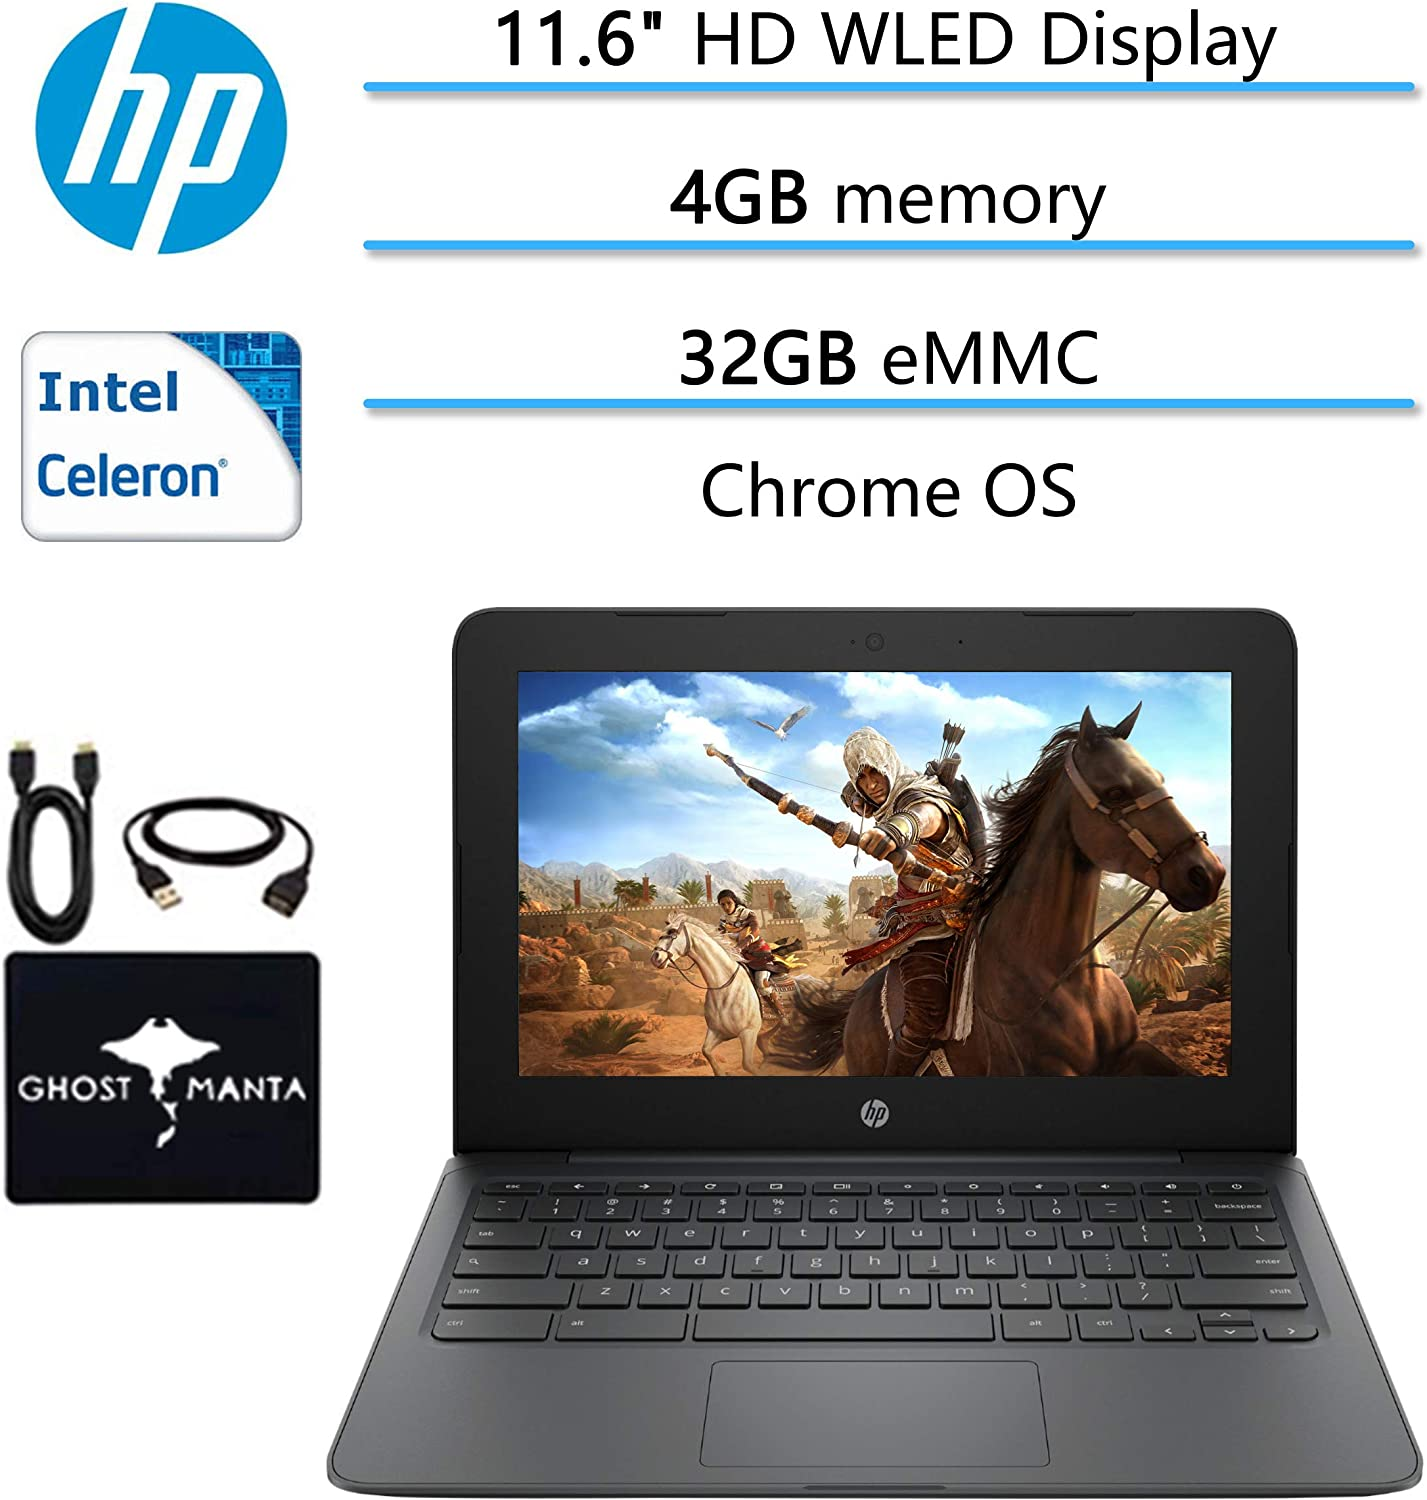 "2020 Newest HP Chromebook 11.6"" HD Laptop for Business and Student, Intel Celeron N3350, 4GB Memory, 32GB eMMC Flash Memory, Webcam, USB-C, WiFi , Bluetooth, Chrome OS, w/Ghost Manta Accessories"